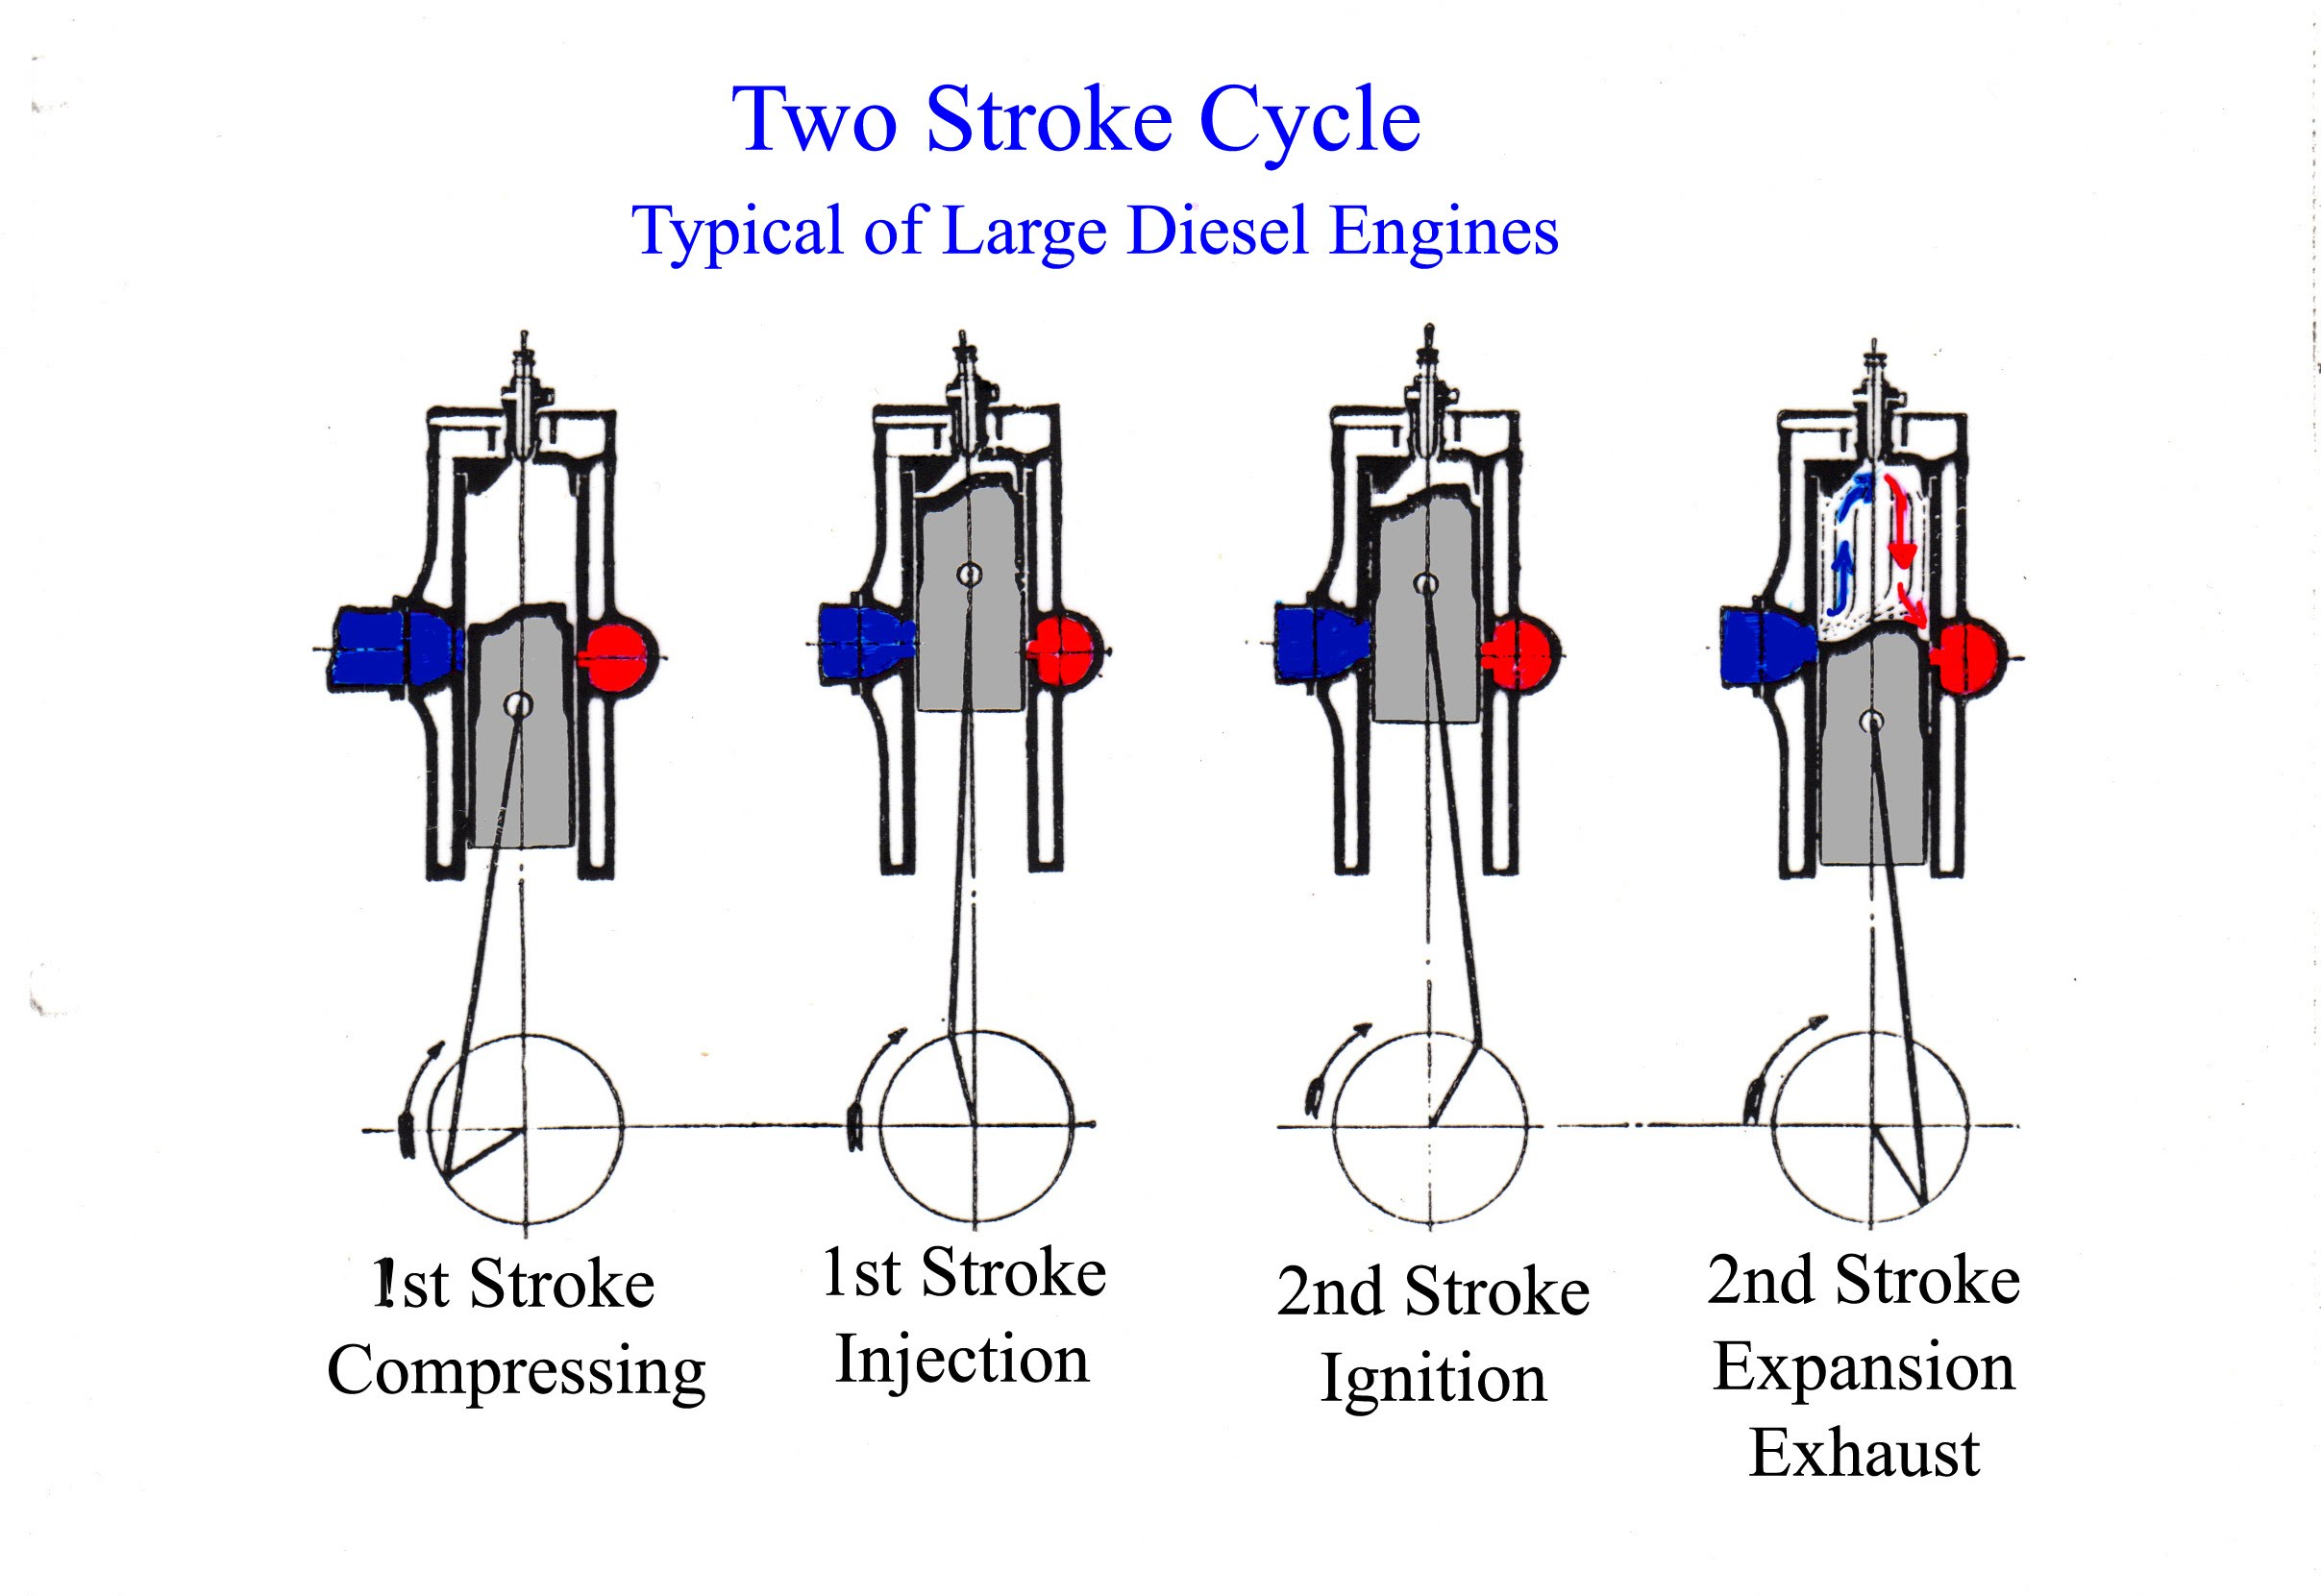 the diesel engine inverclyde shipbuilding engineering rh inverclydeshipbuilding co uk two stroke diesel engine cycle diagram two stroke diesel engine timing diagram